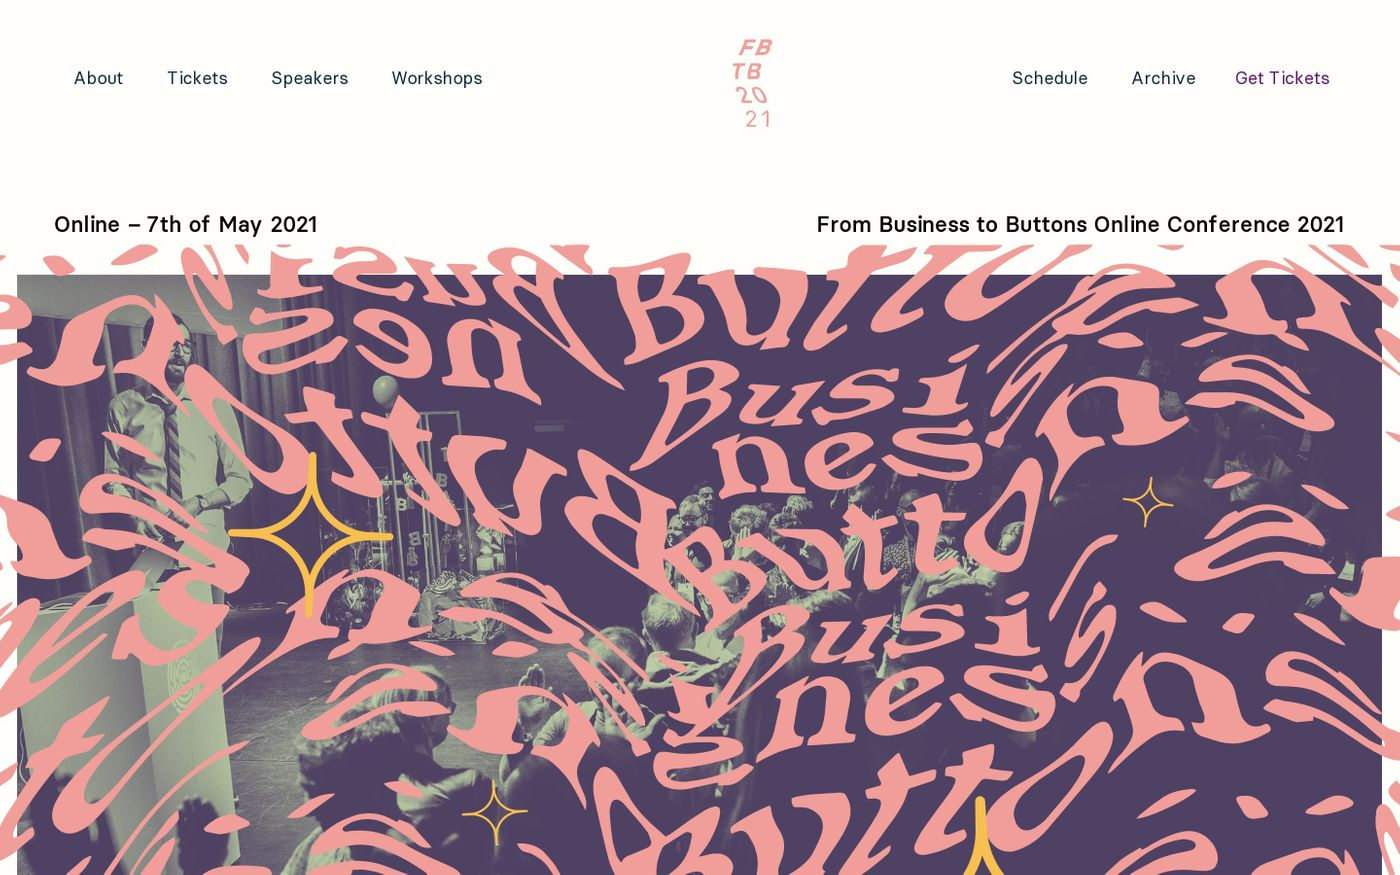 Screenshot of From Business to Buttons 2021 website